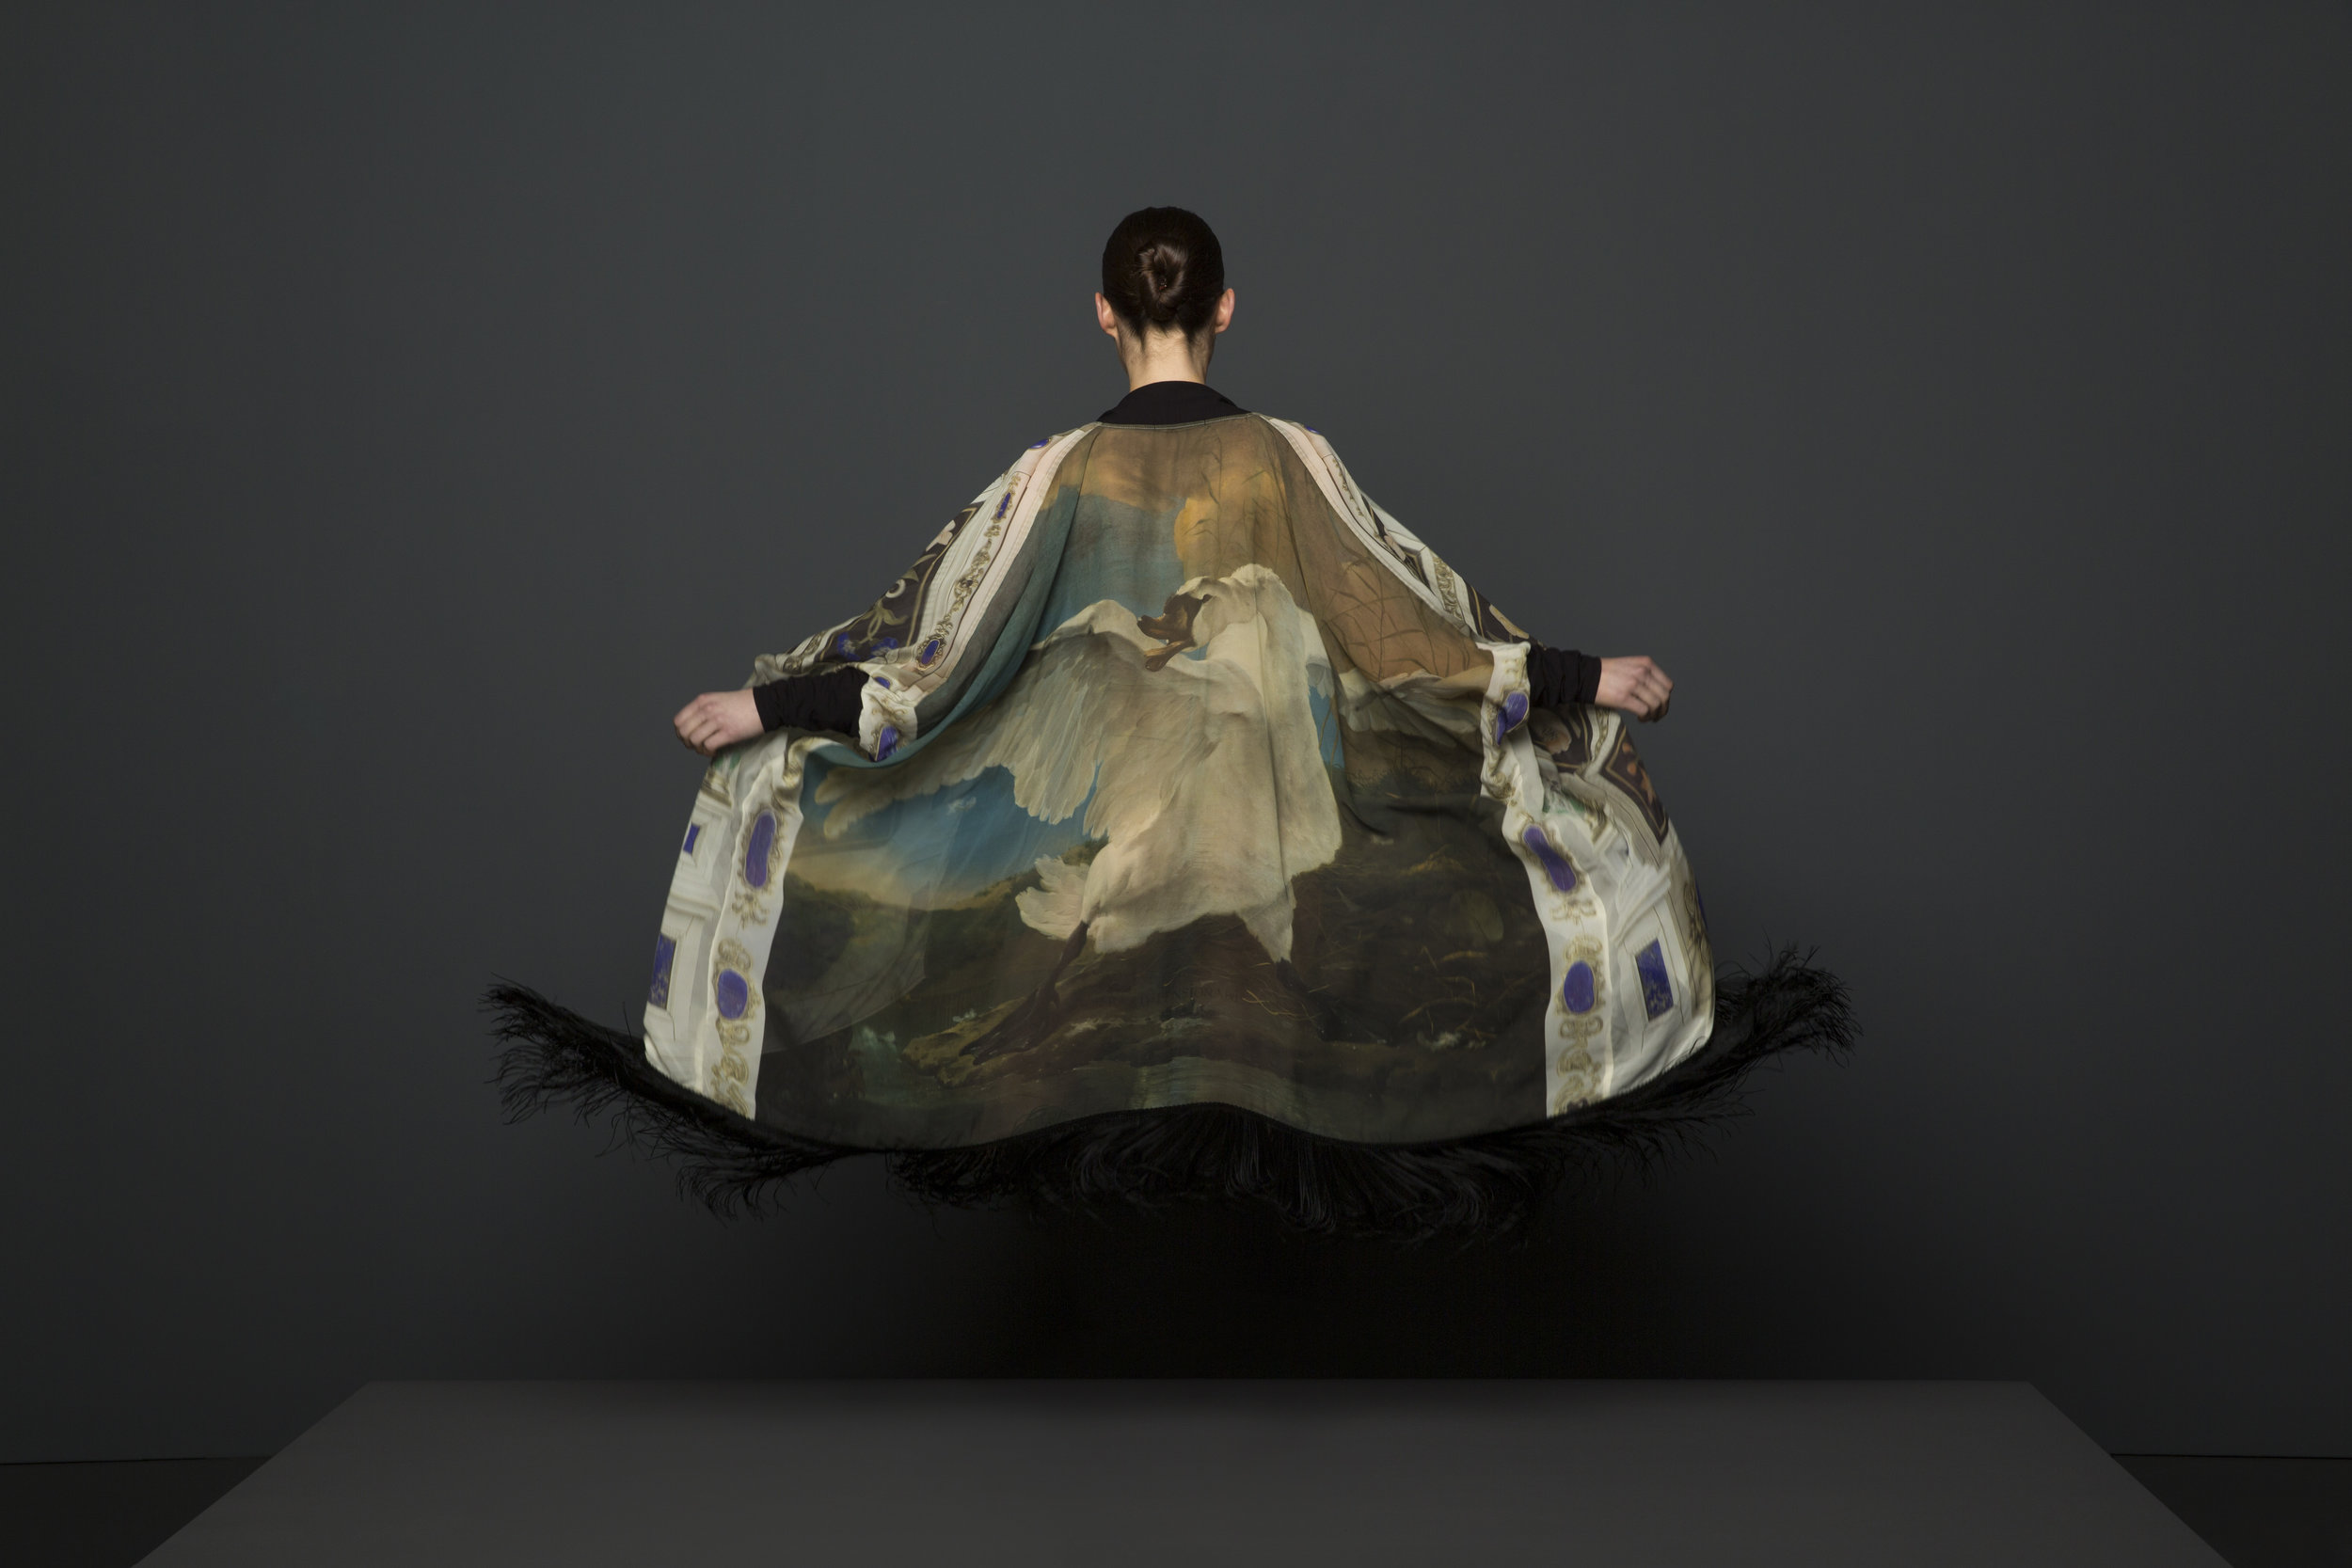 Etsy + The Rijksmuseum - In cooperation with the Rijksmuseum Amsterdam,we asked Etsy sellers to create fashion products inspired by art pieces from the museum's collection. The result? An exhibition of extraordinary creations that combined Dutch Golden Age art with modern fashion design.